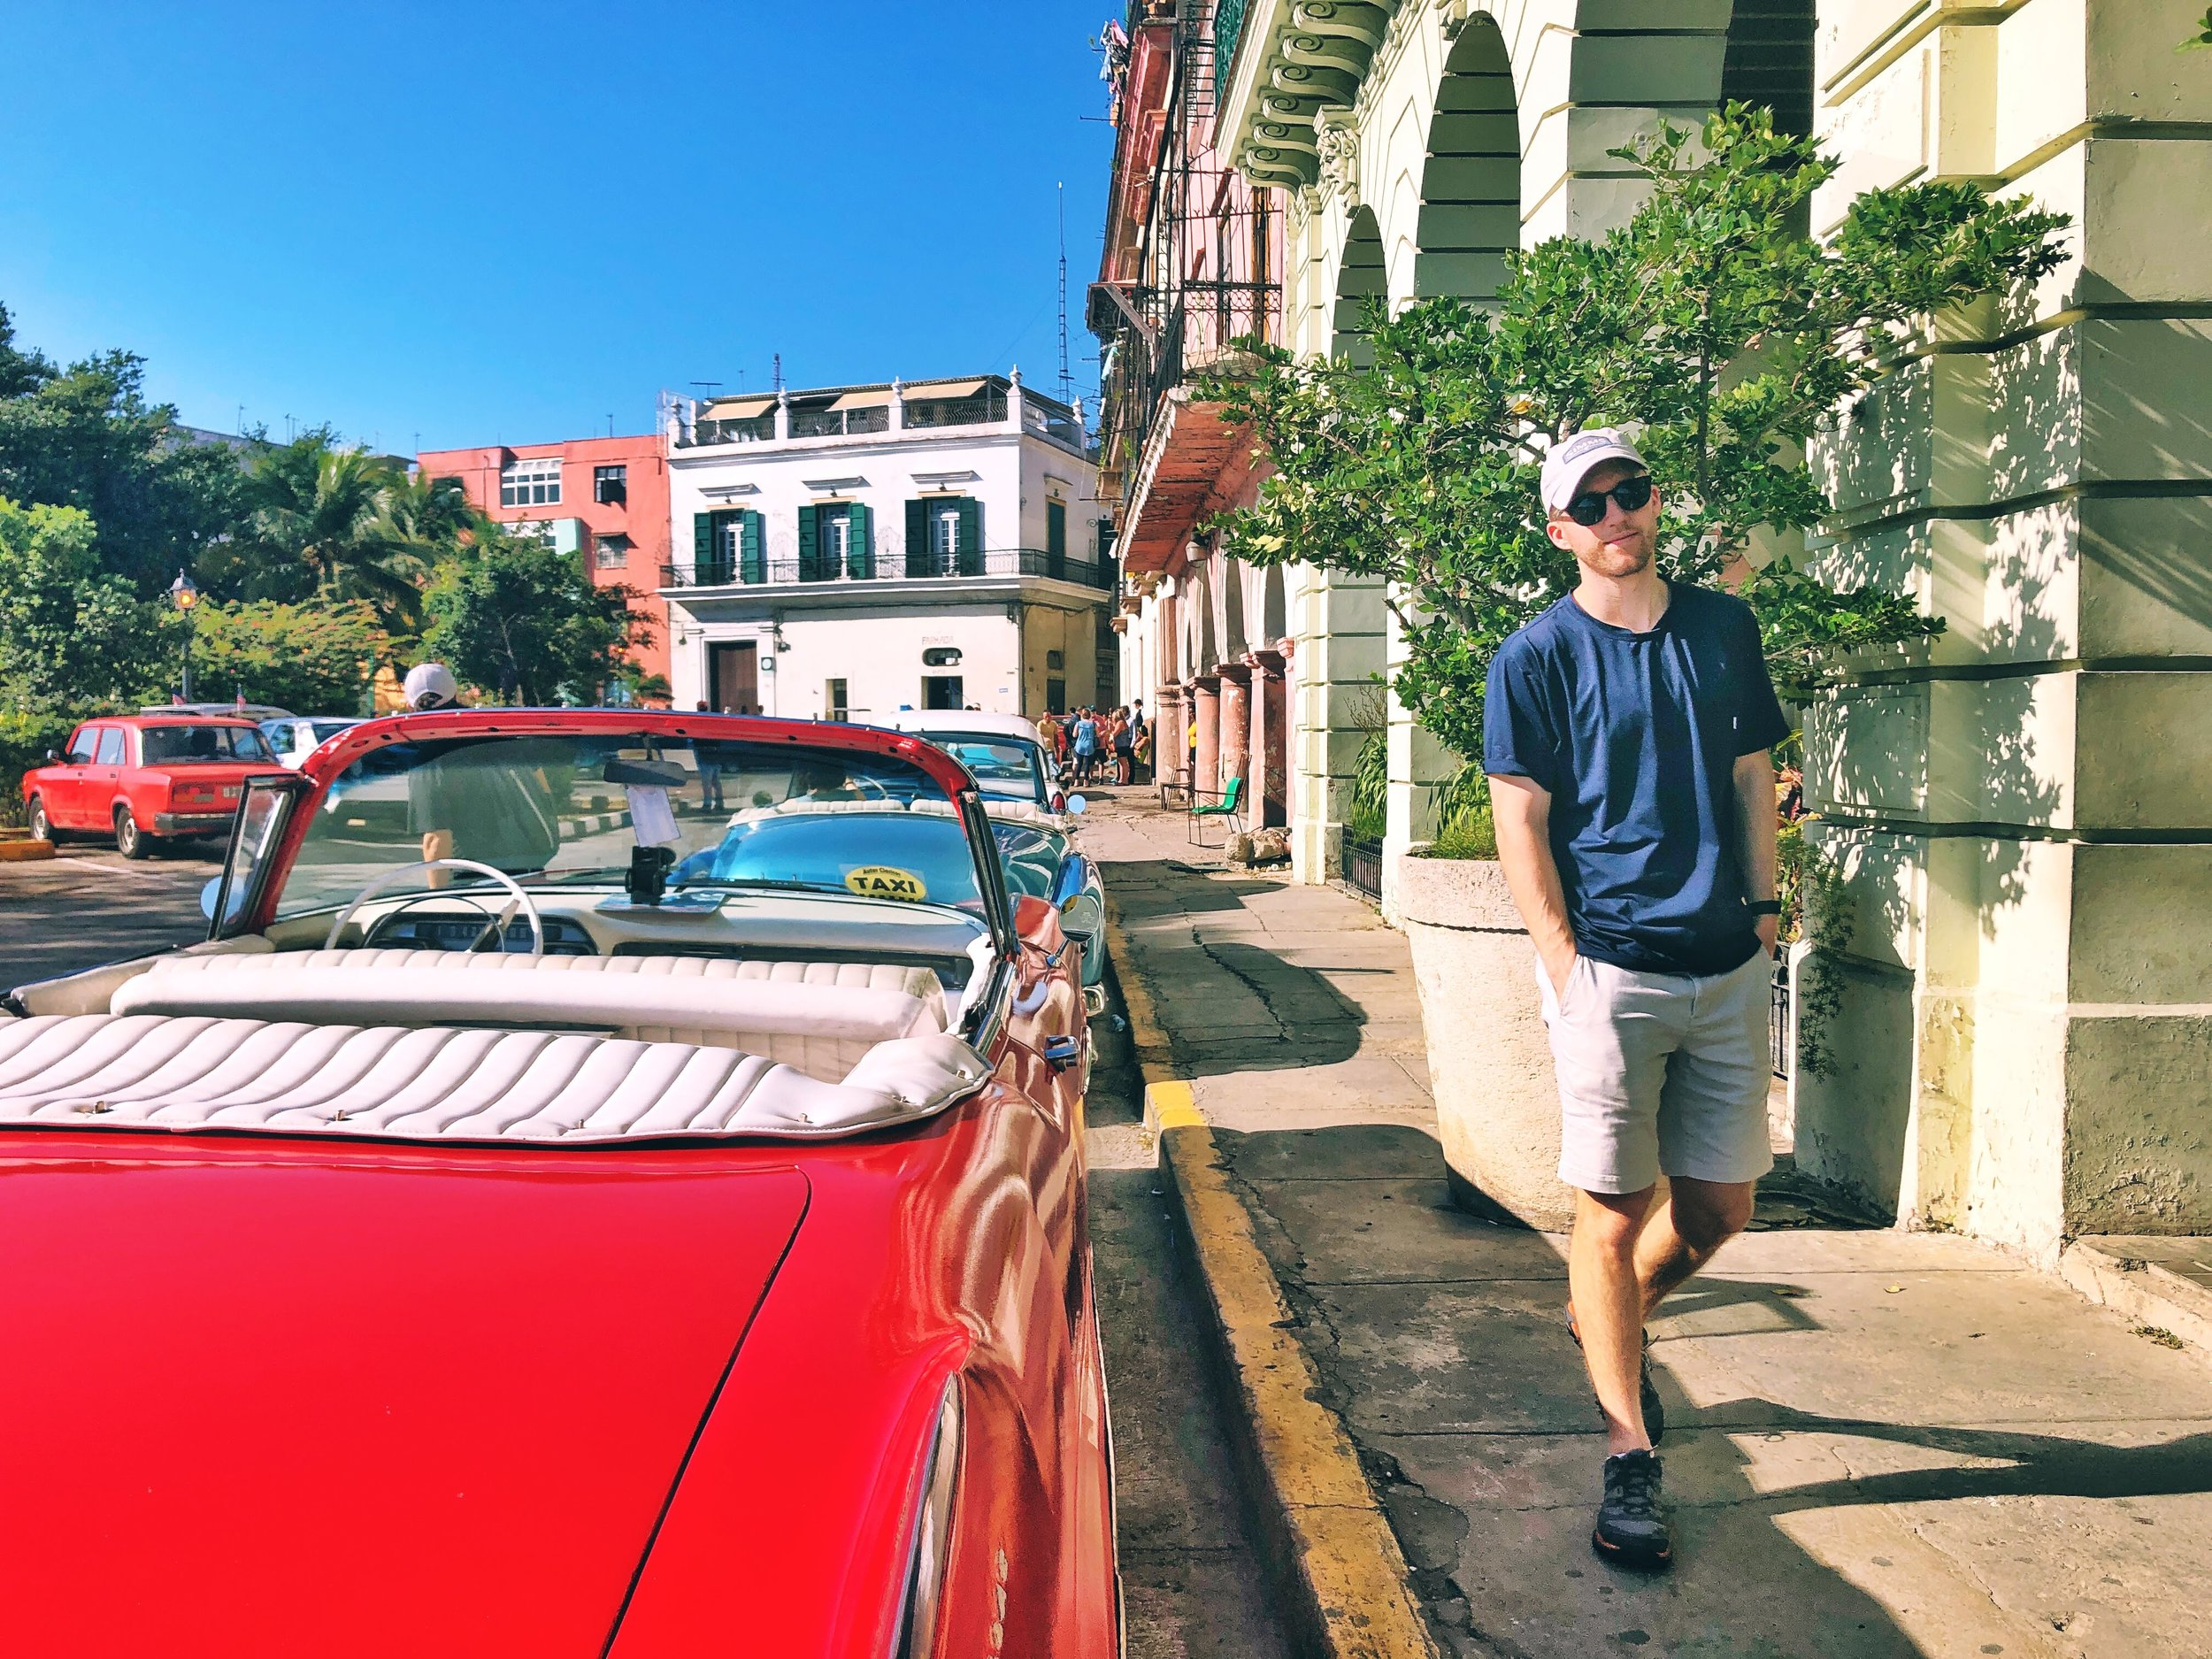 Havana - A vibrant city full of color and history